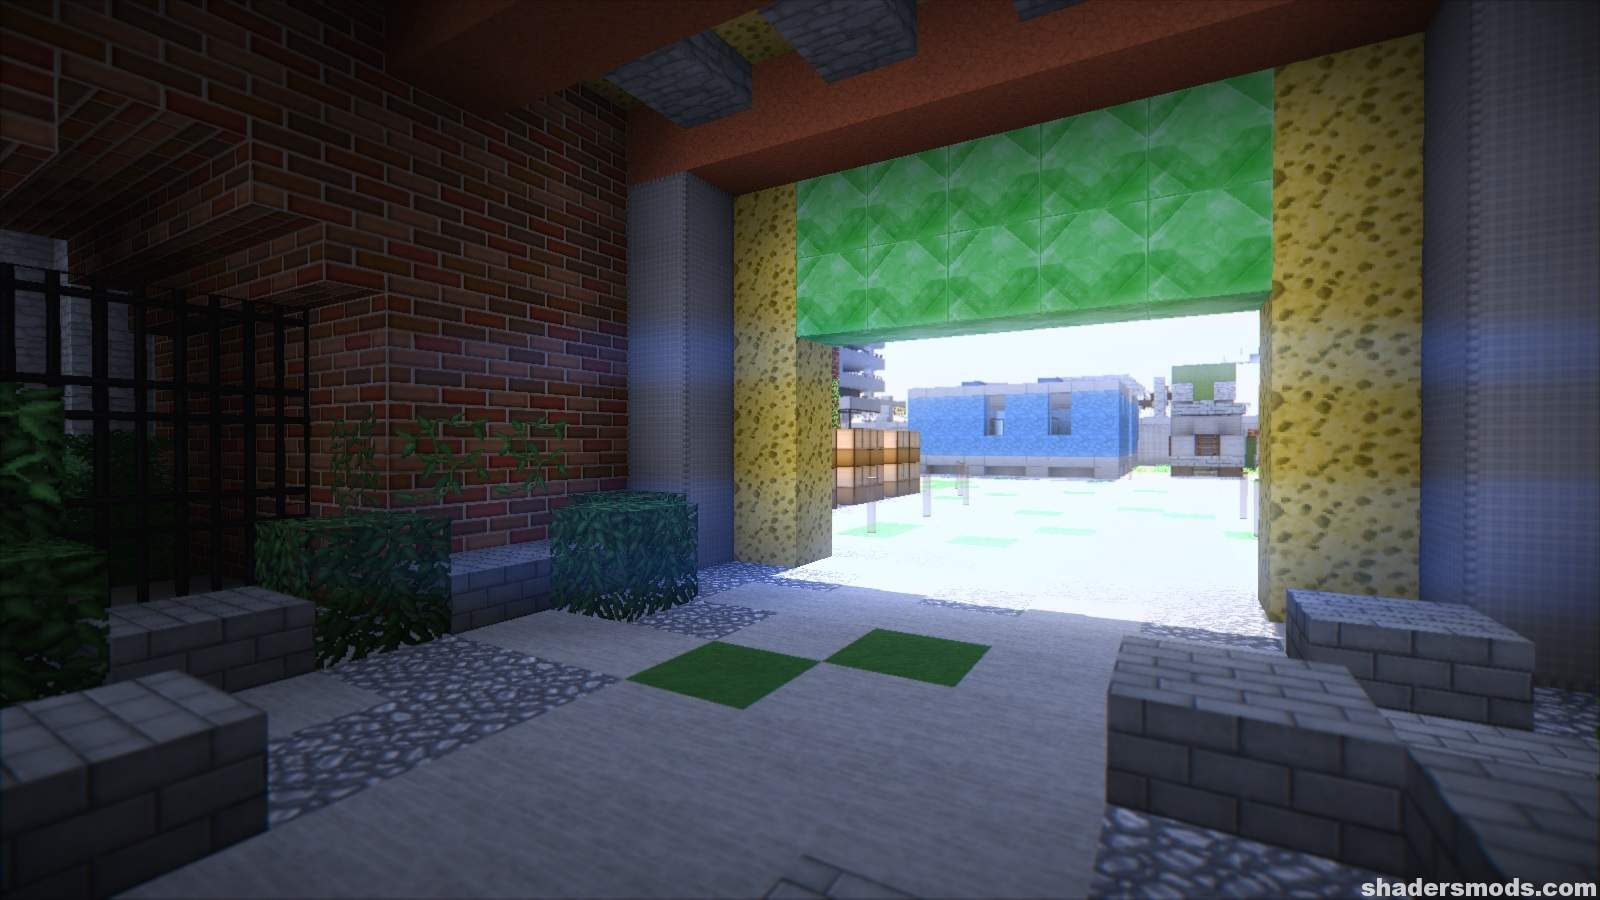 kuda-shaders-minecraft